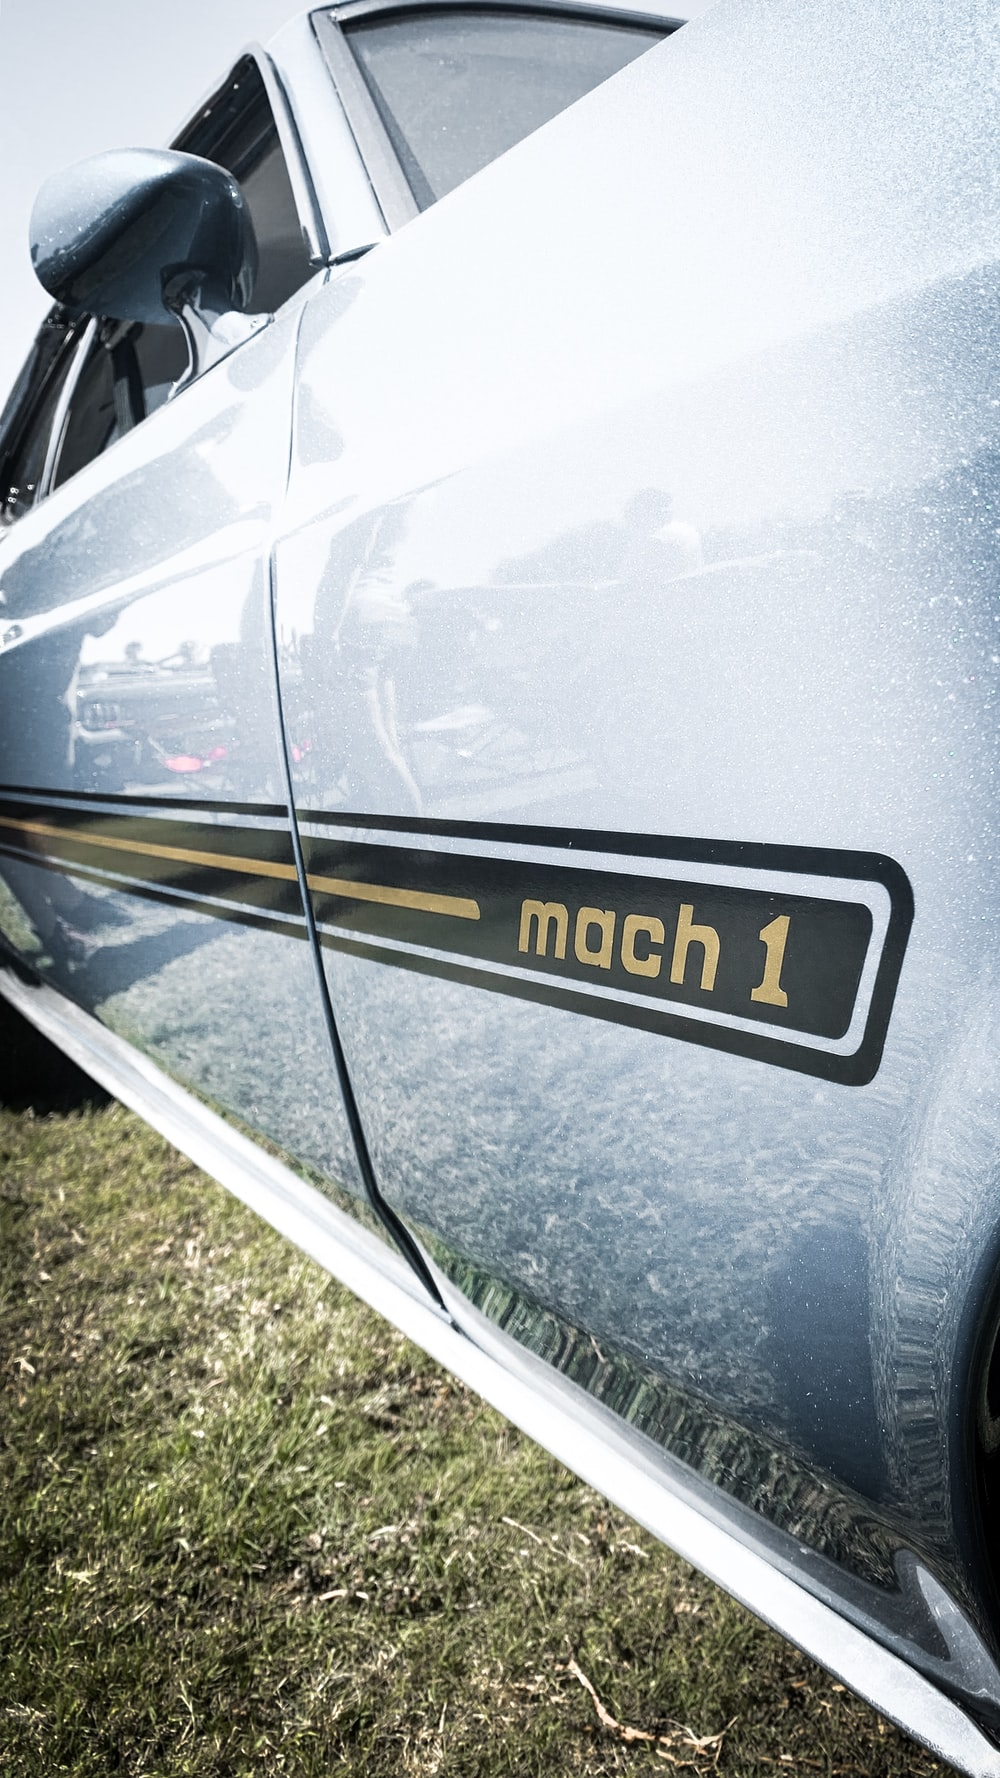 parked gray Mach 1 vehicle during daytime